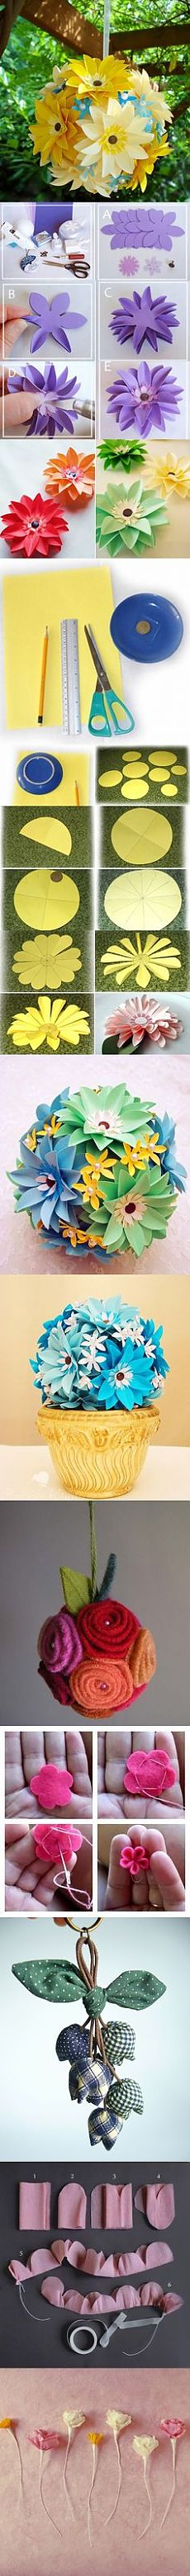 flores artificiales on Pinterest | Felt Flowers, Felt Roses and Felt Flower Tutorial